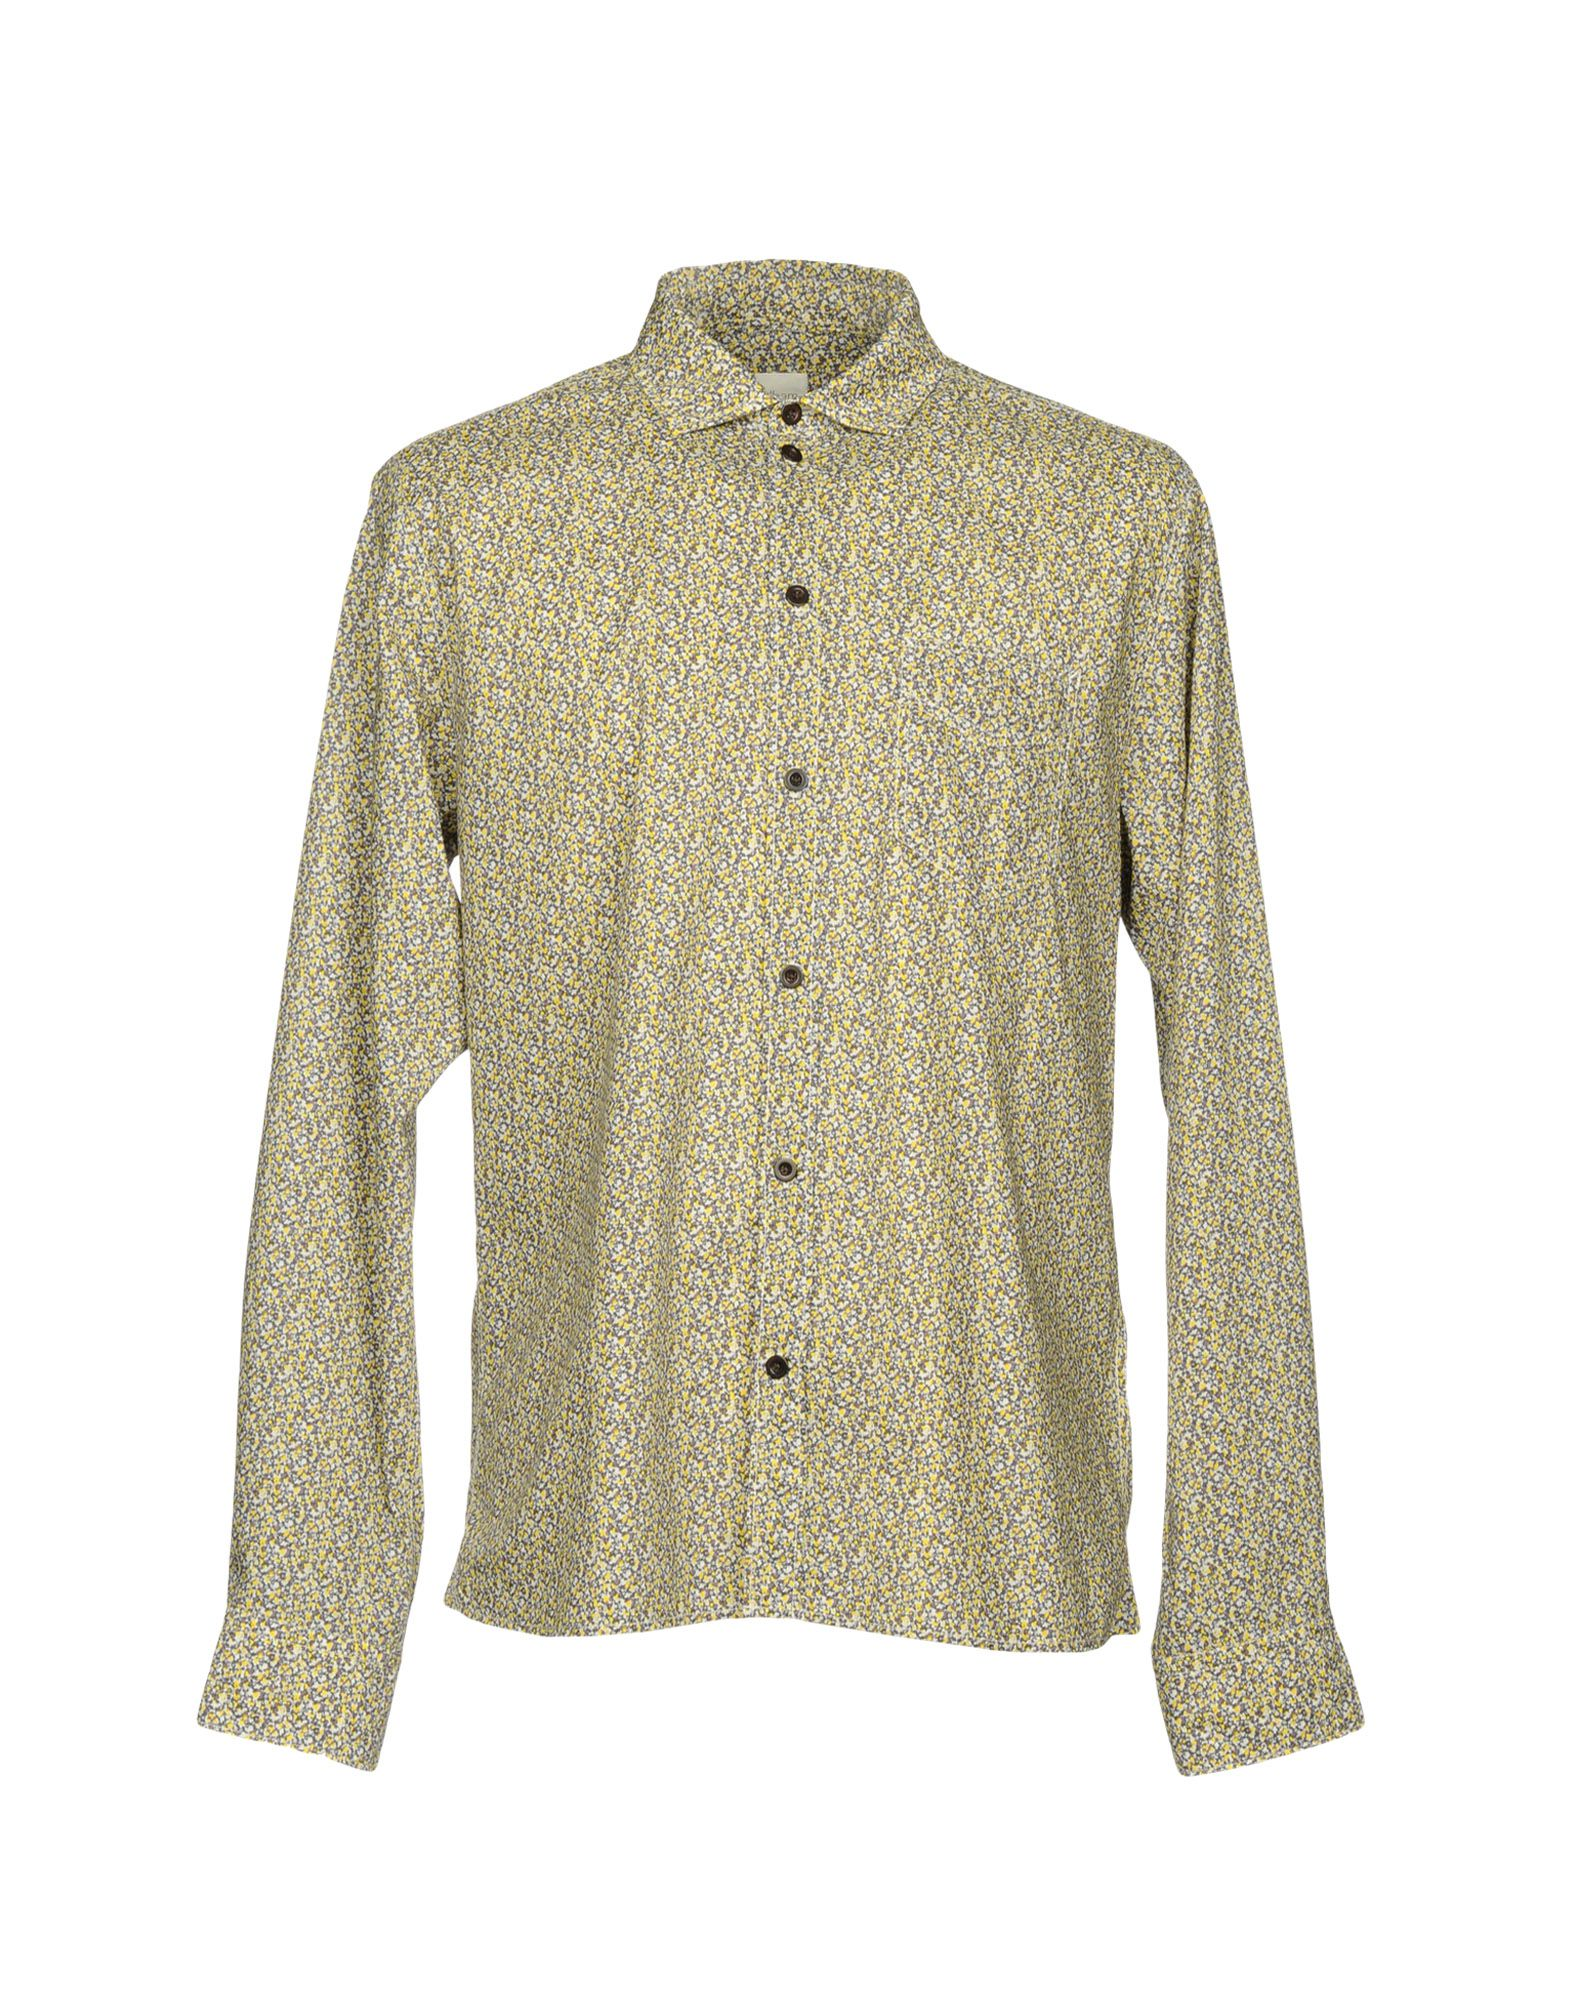 ALBAM Patterned Shirt in Yellow